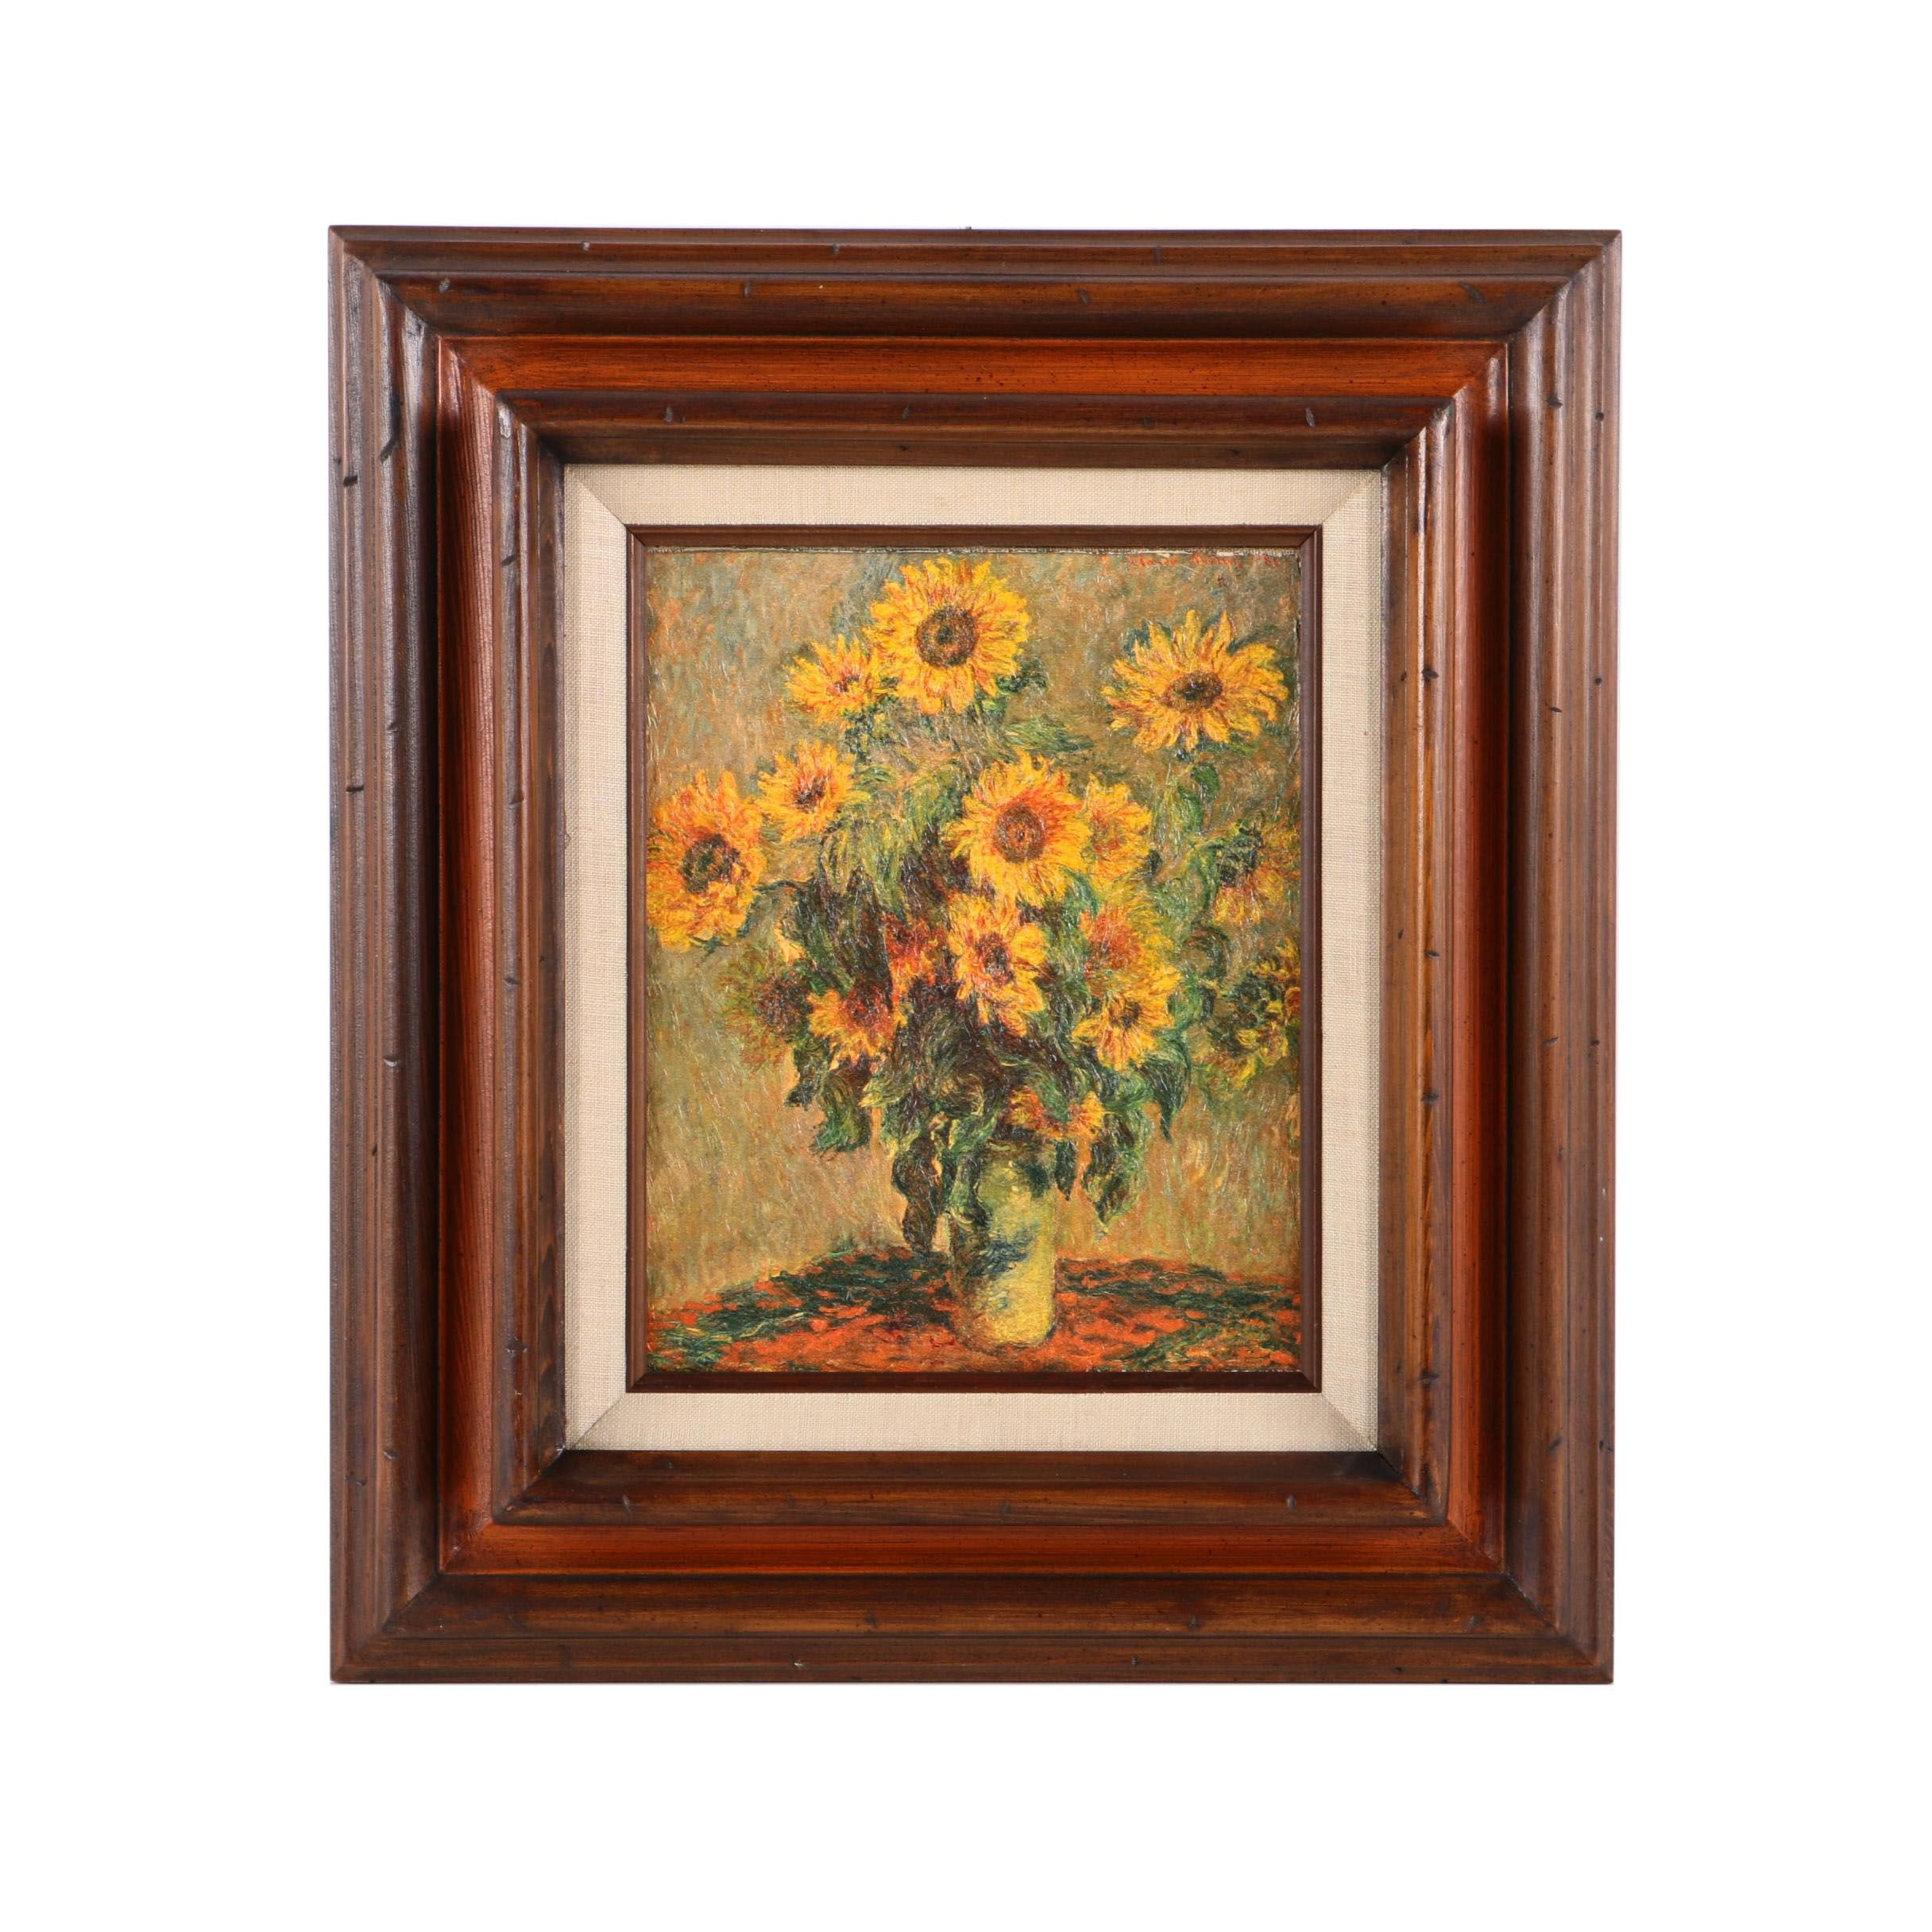 "Embellished Giclee on Canvas After Claude Monet's ""Sunflowers"""